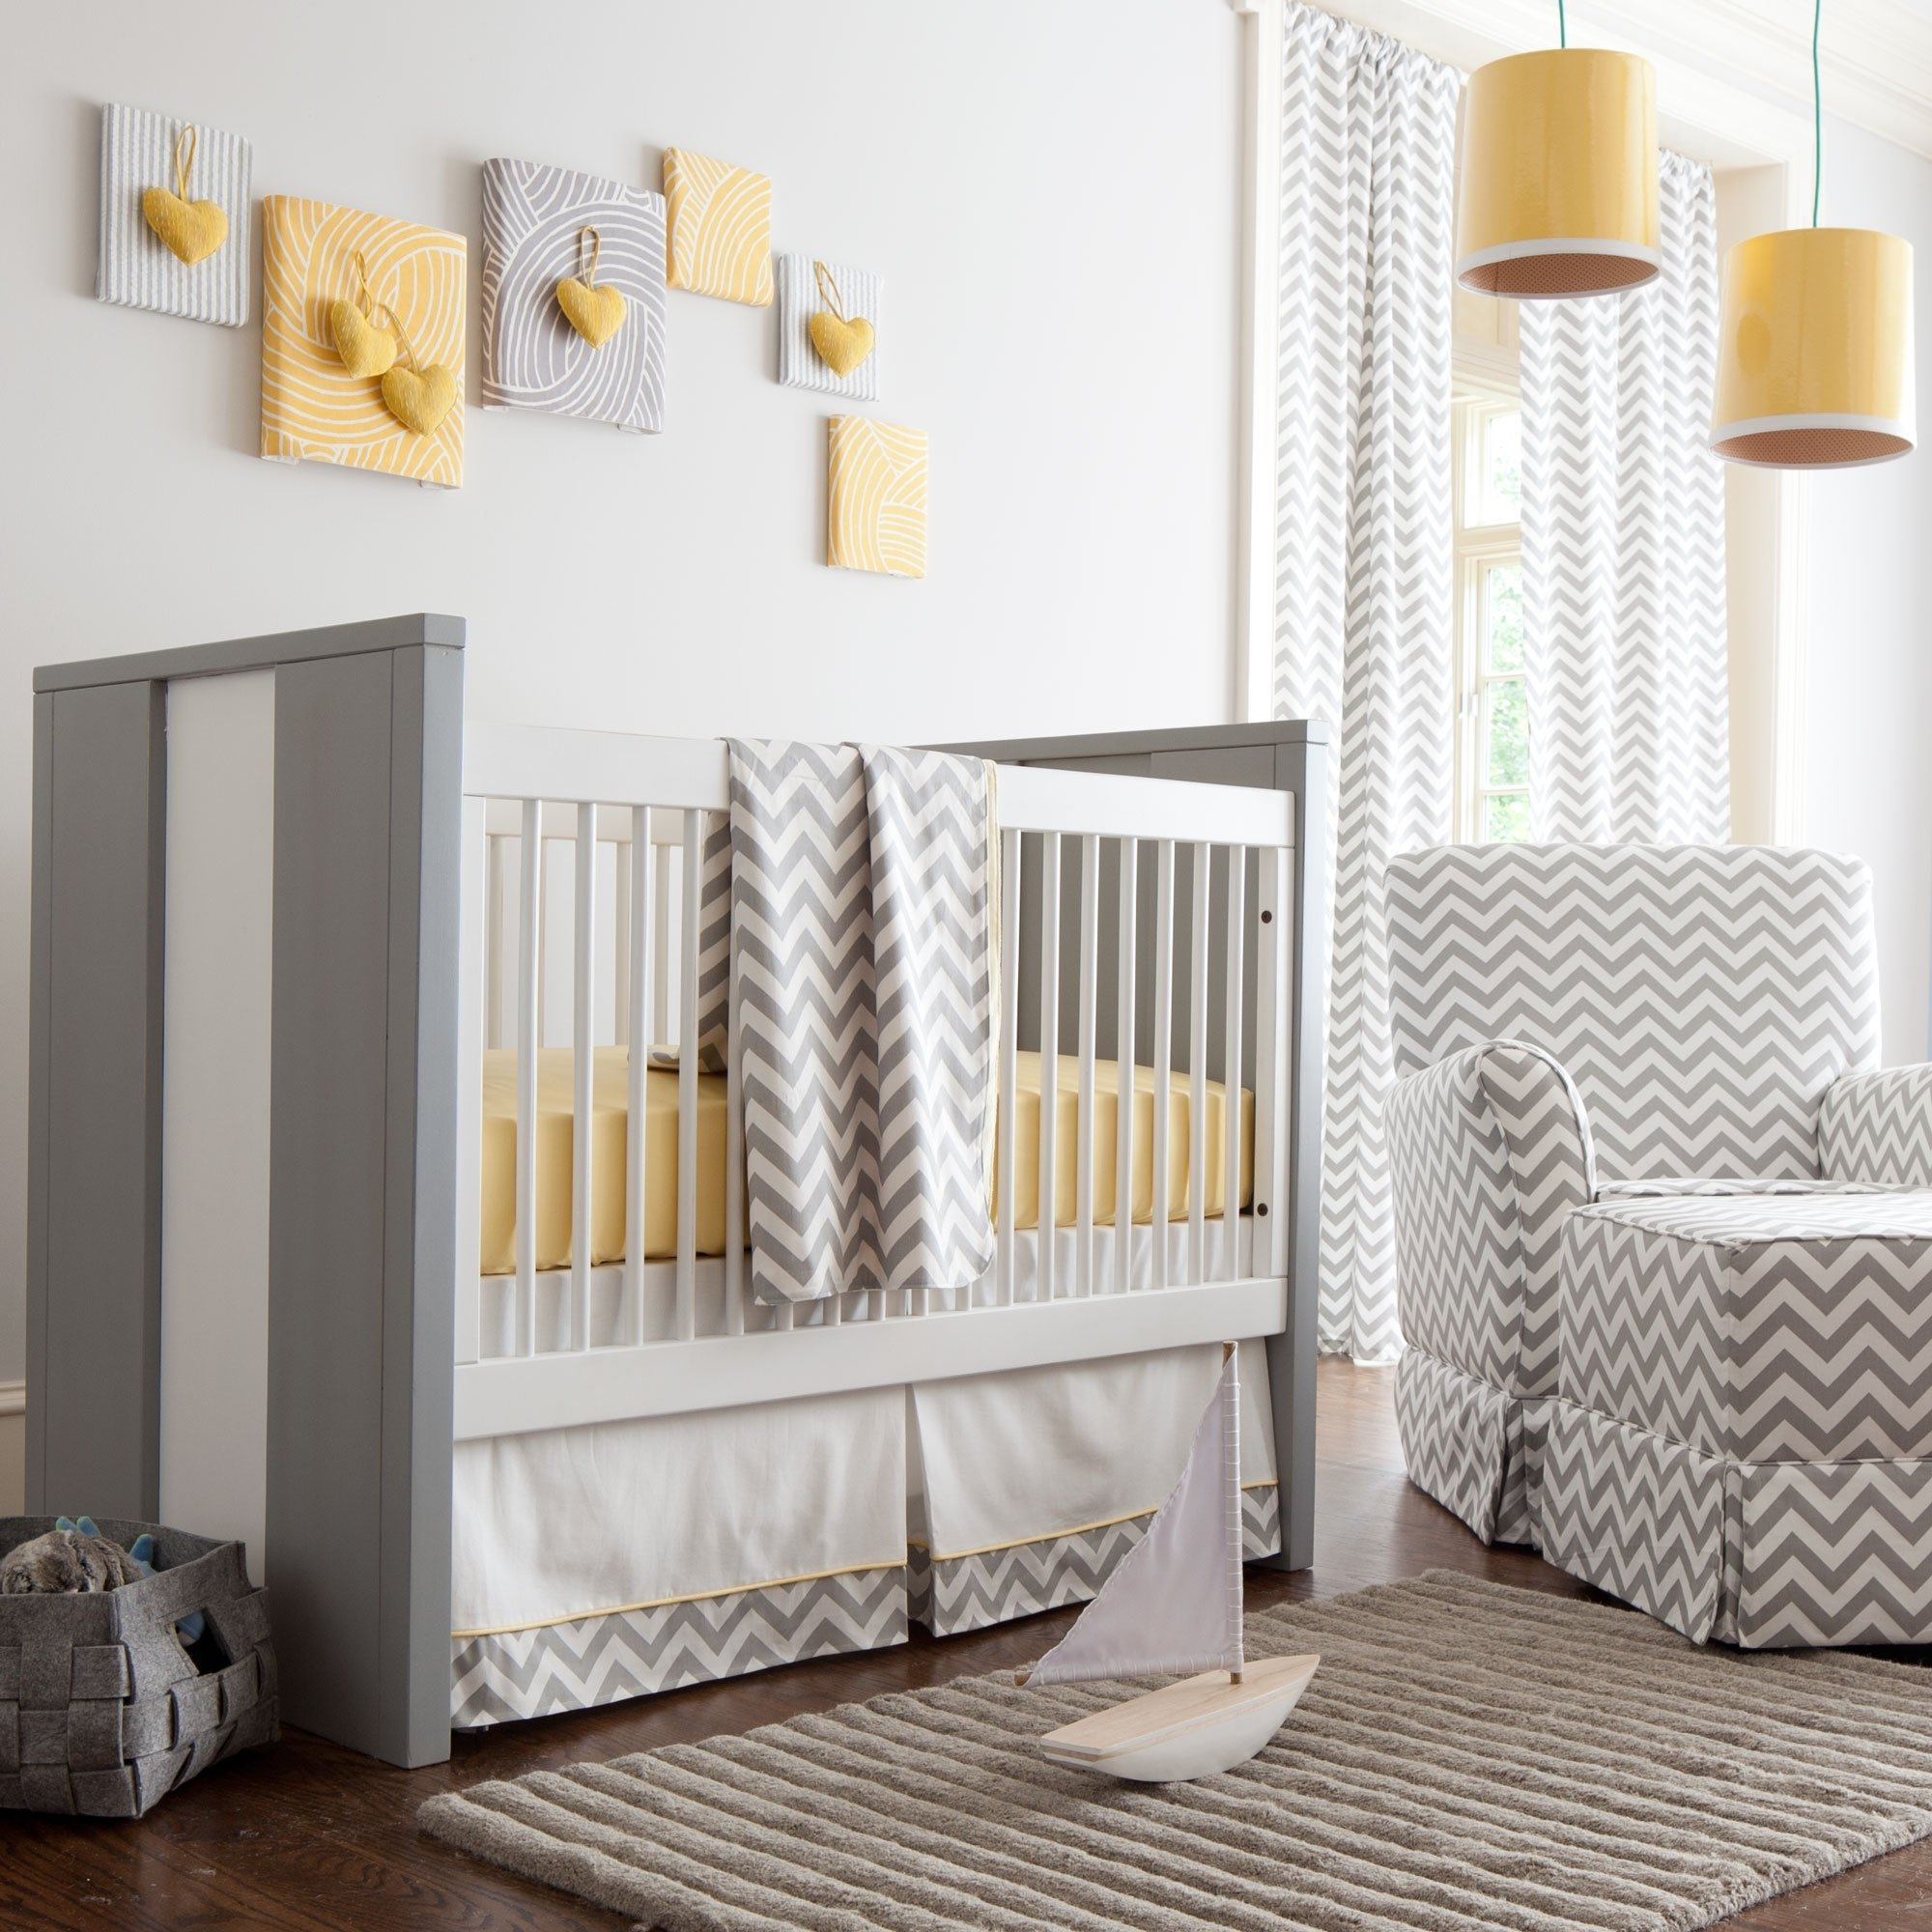 10 Fashionable Yellow And Gray Nursery Ideas baby boy bedding ideas baby zone area and yellow grey baby room 2020